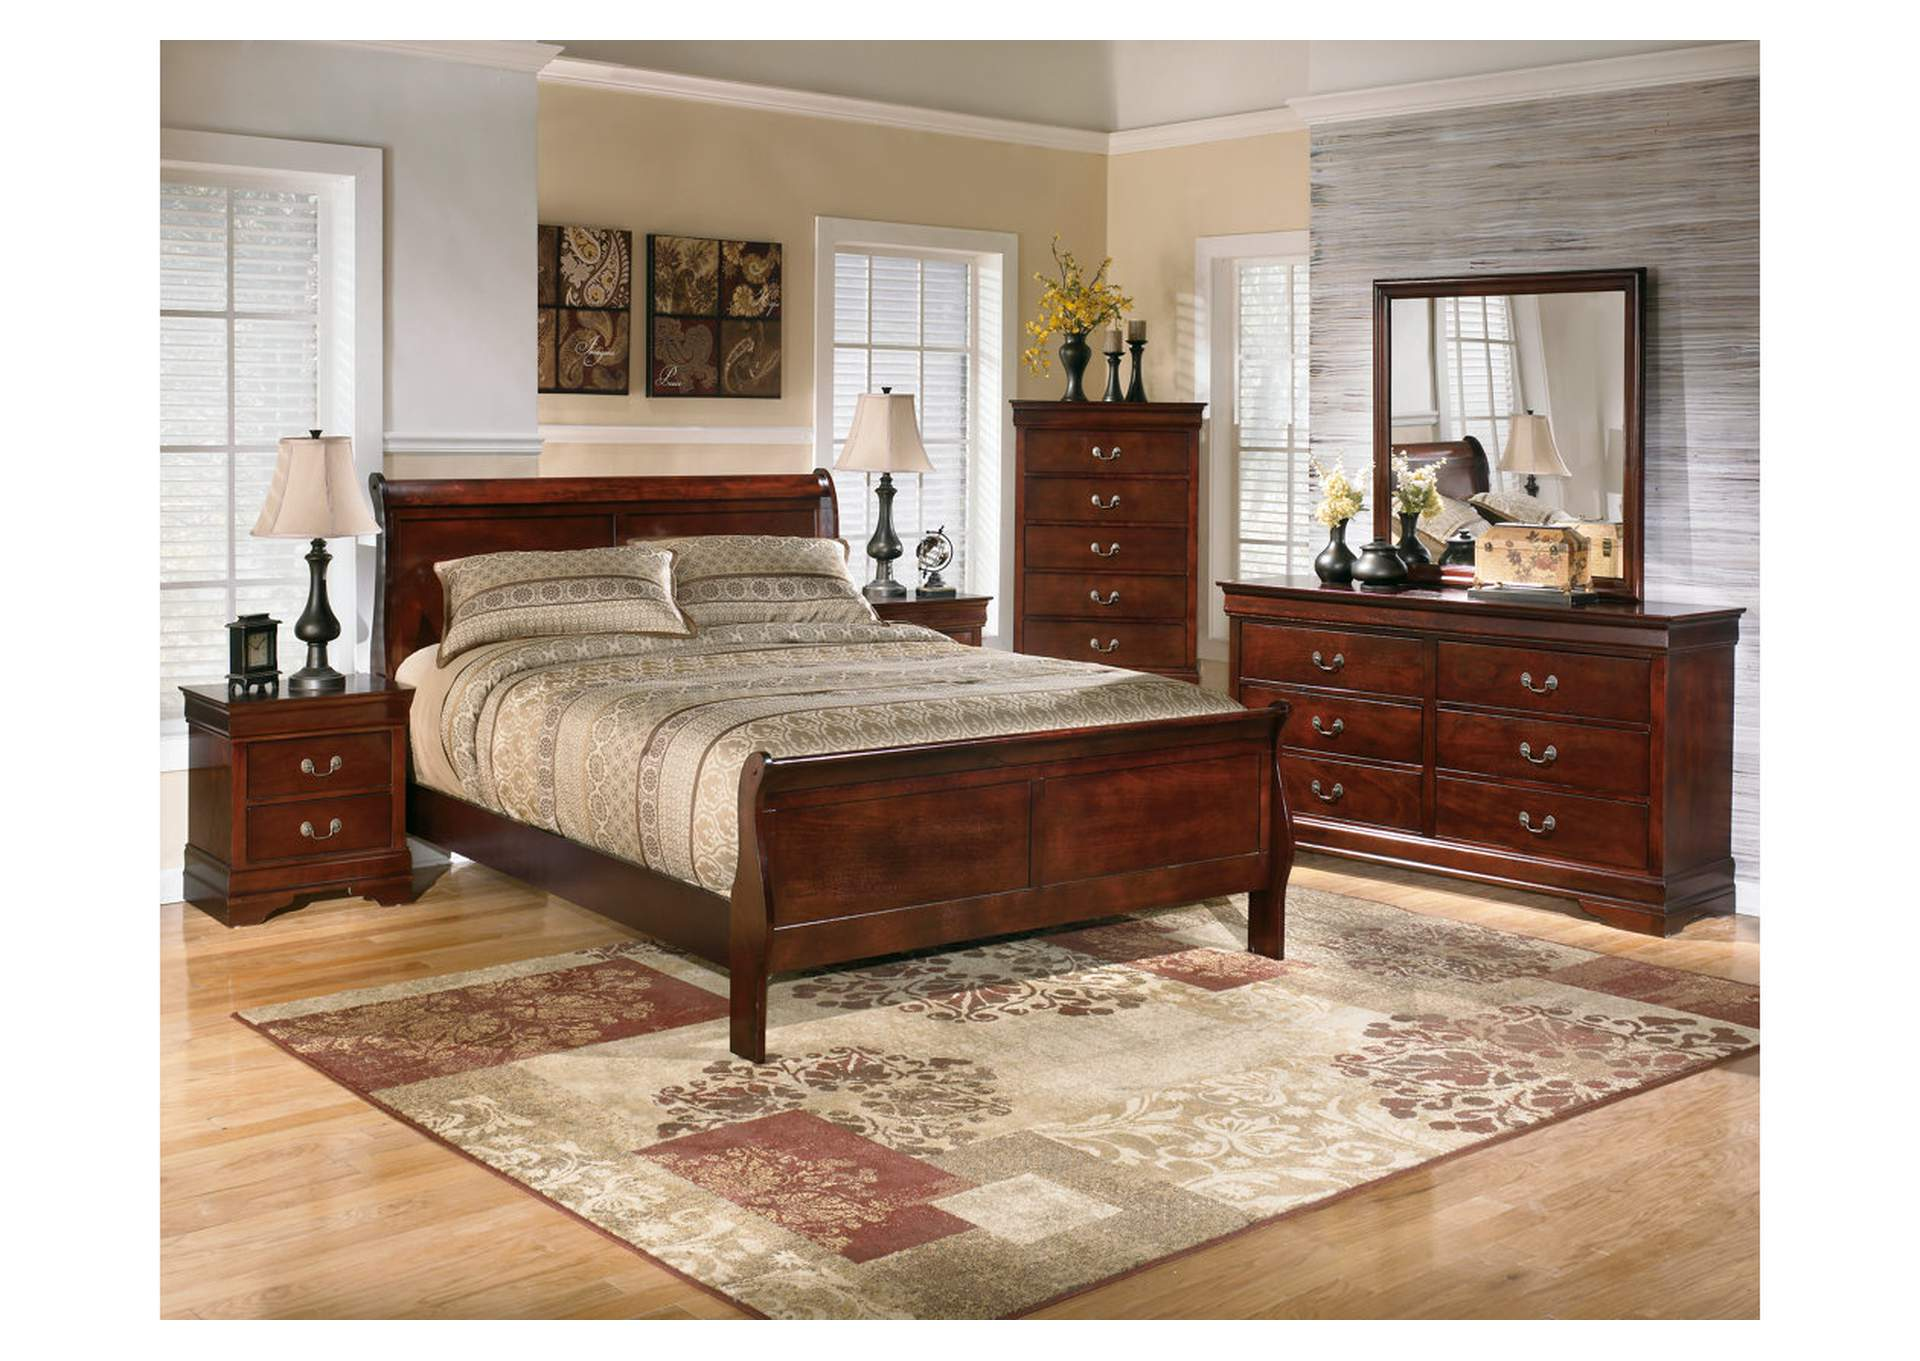 Alisdair California King Sleigh Bed w/Dresser & Mirror,Signature Design By Ashley